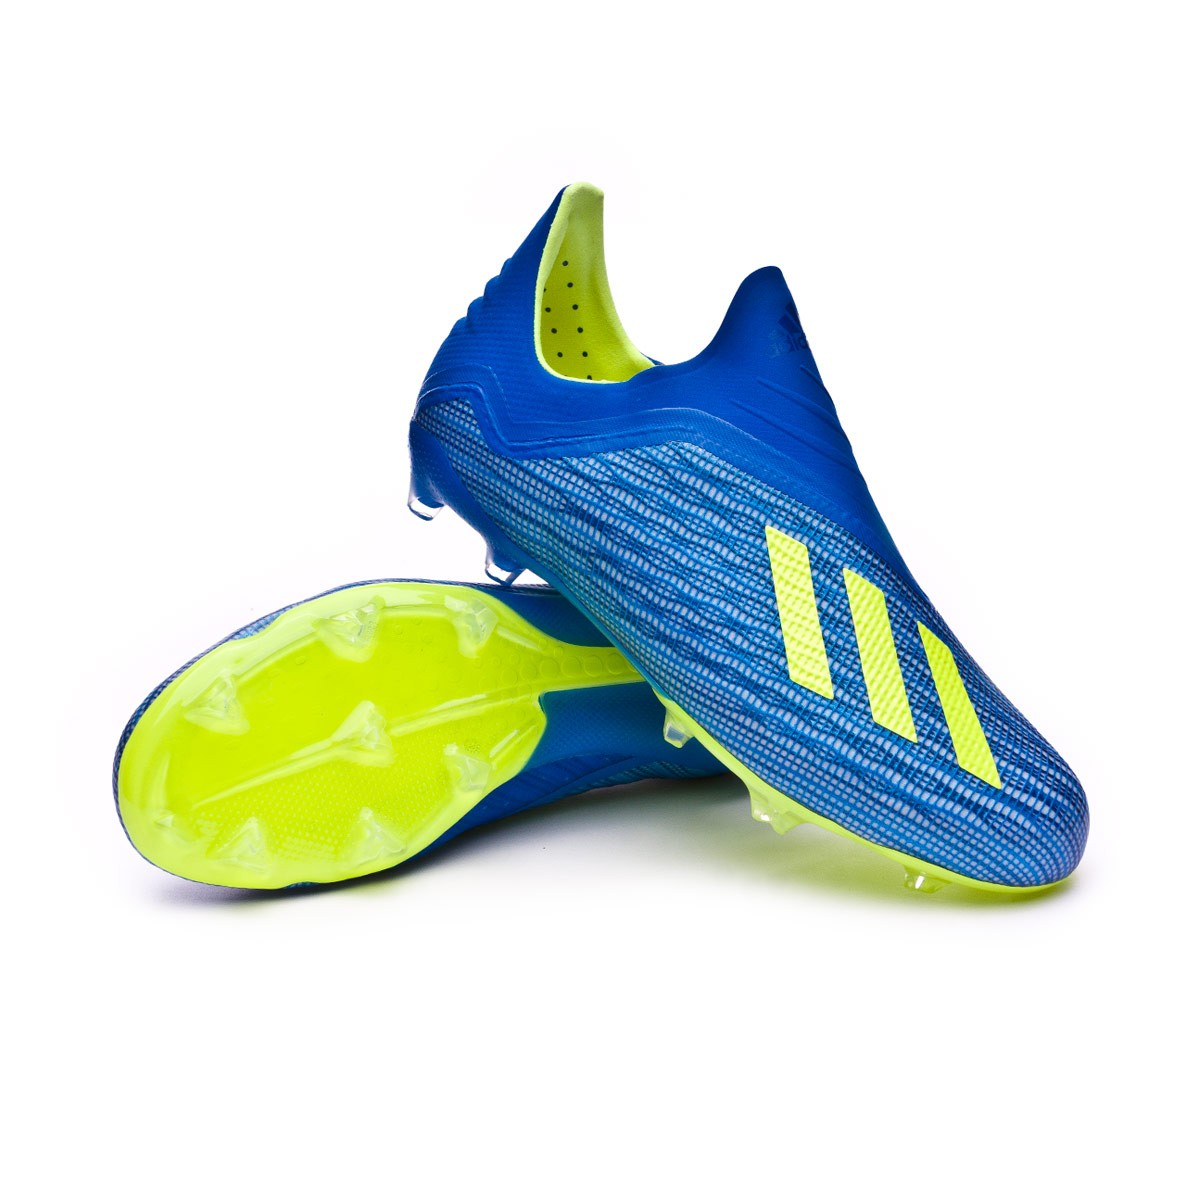 finest selection 16364 33f47 Chaussure de foot adidas X 18+ FG enfant Foot blue-Solar yellow-Black -  Boutique de football Fútbol Emotion